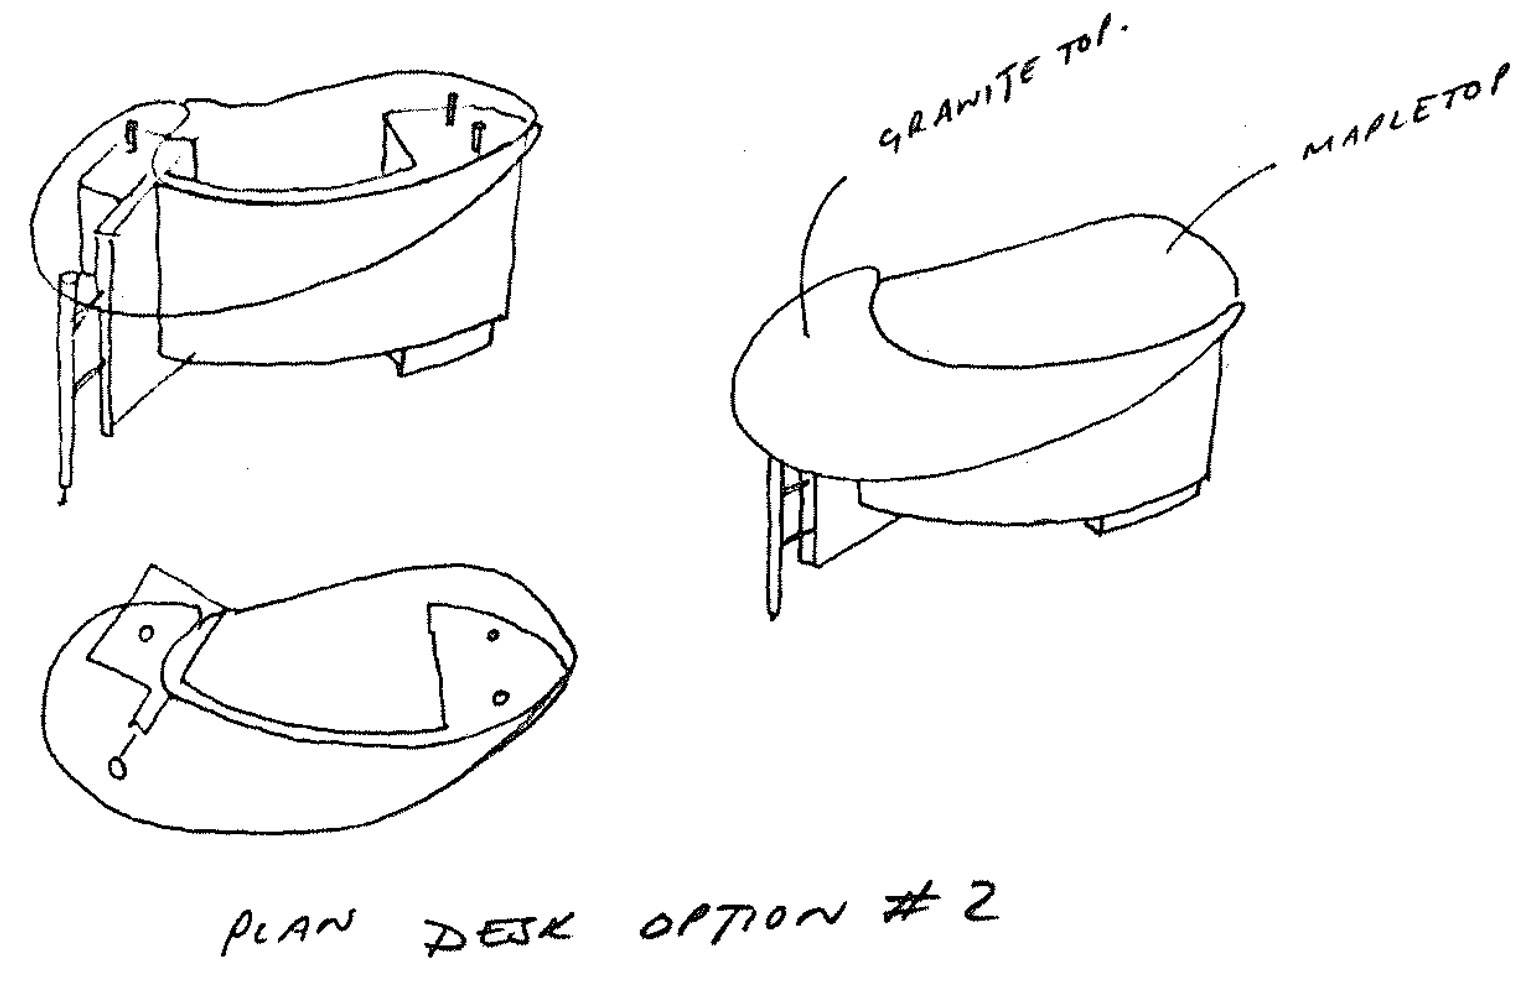 Clarins - Desk Design Sketches